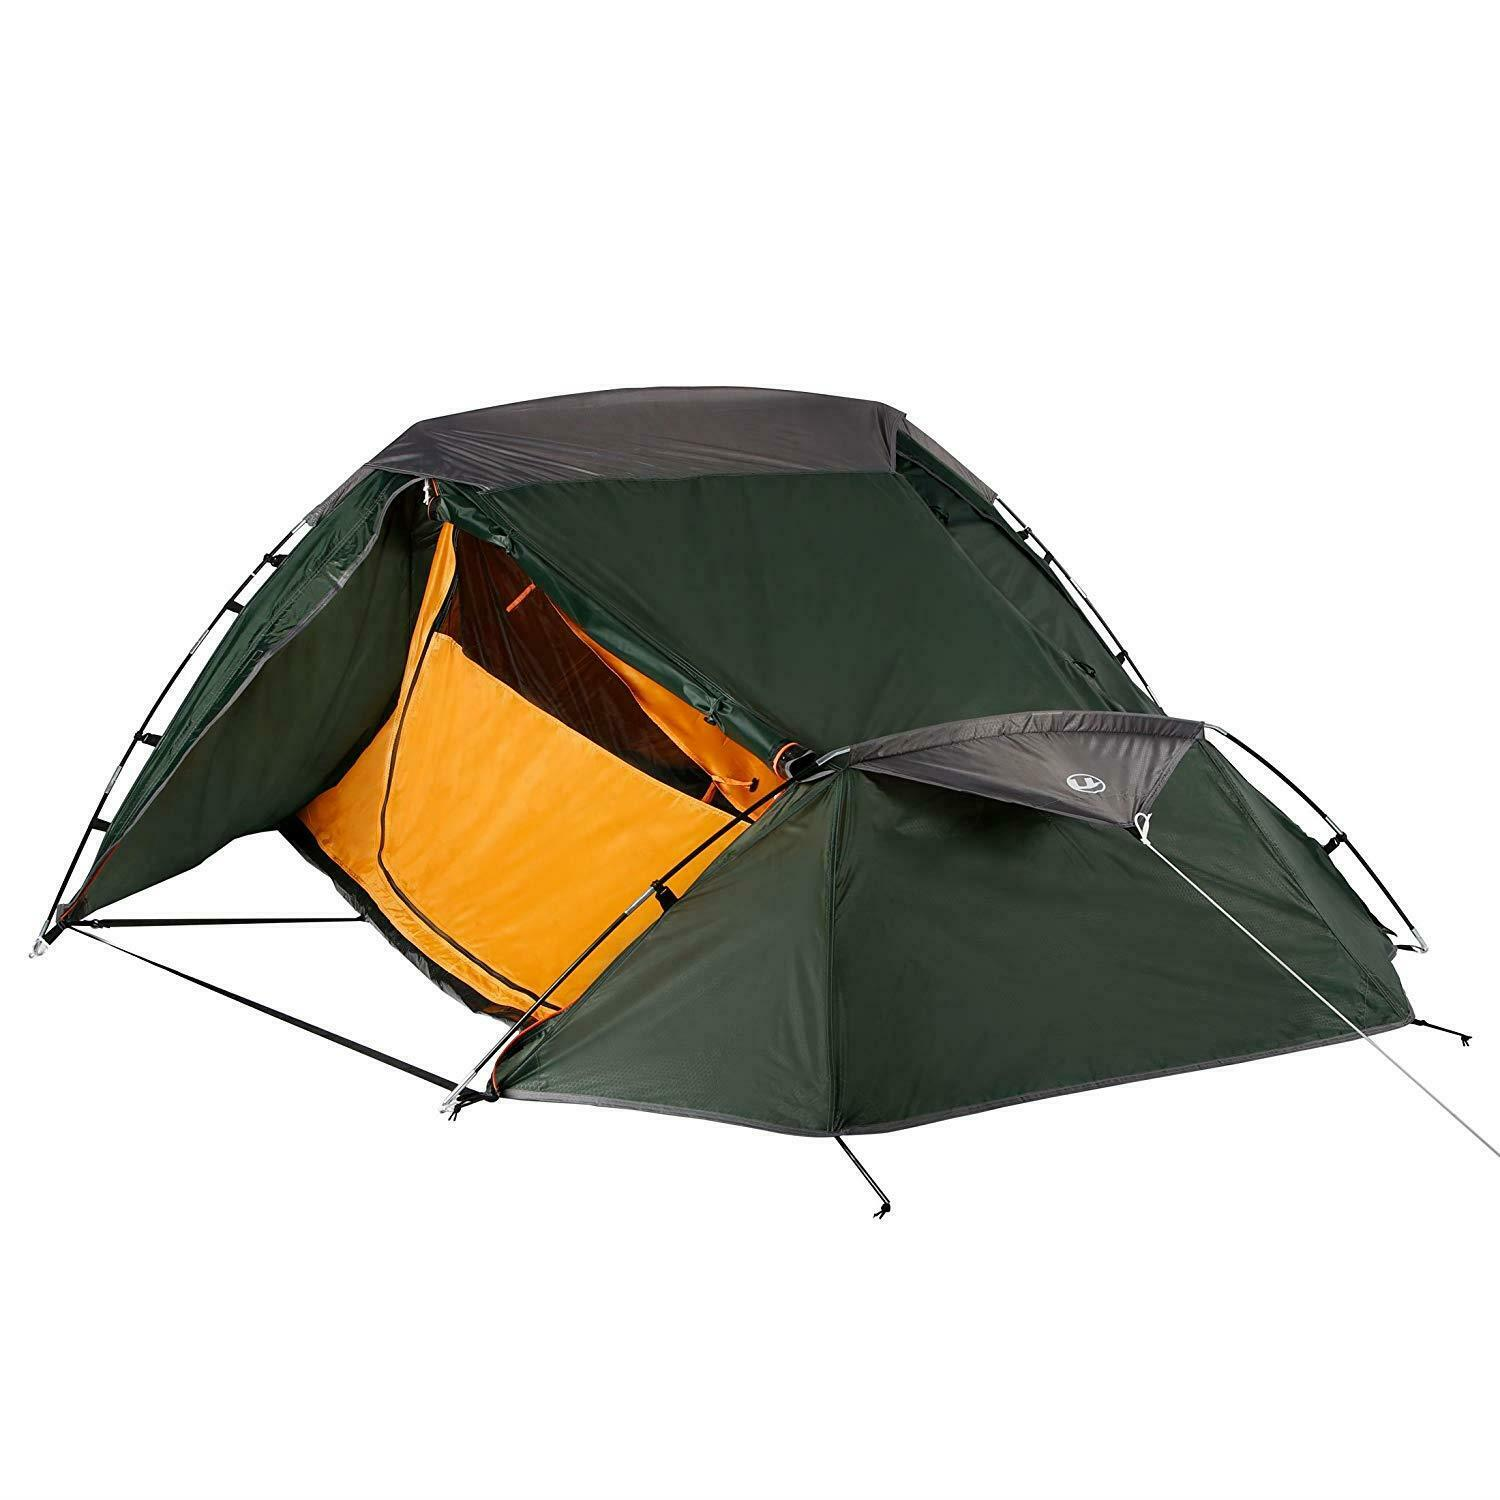 2 Person Hiking Tent Trekking Camping Sports Carry Bag Fishing Festivals UK NEW